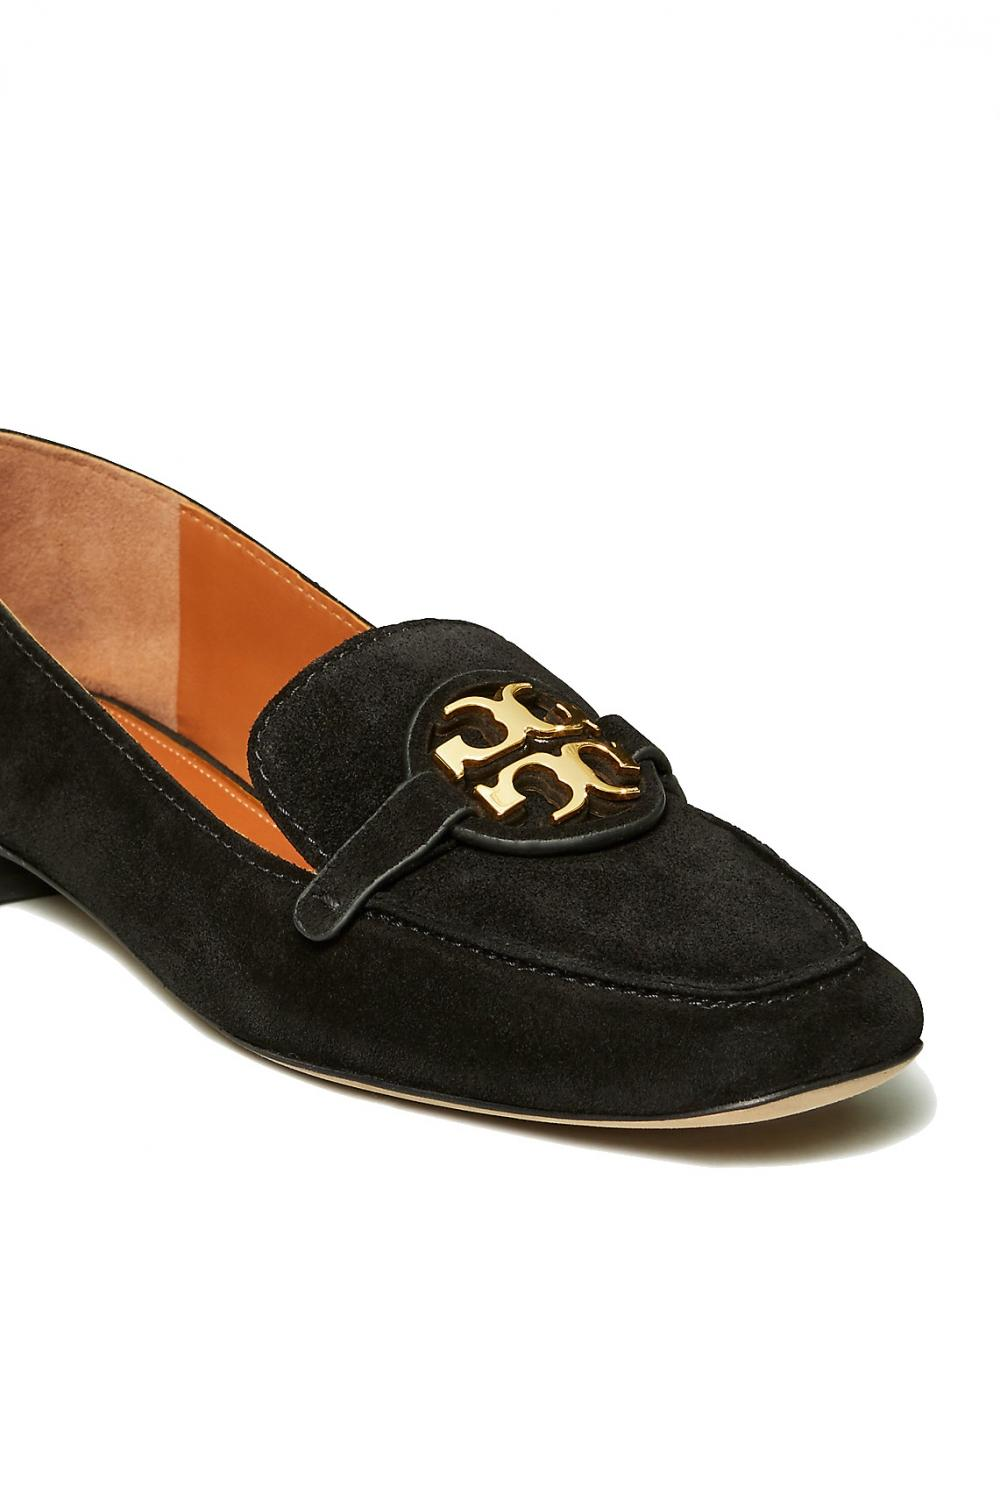 Tory Burch Damen Metal Miller Loafer Schwarz 4